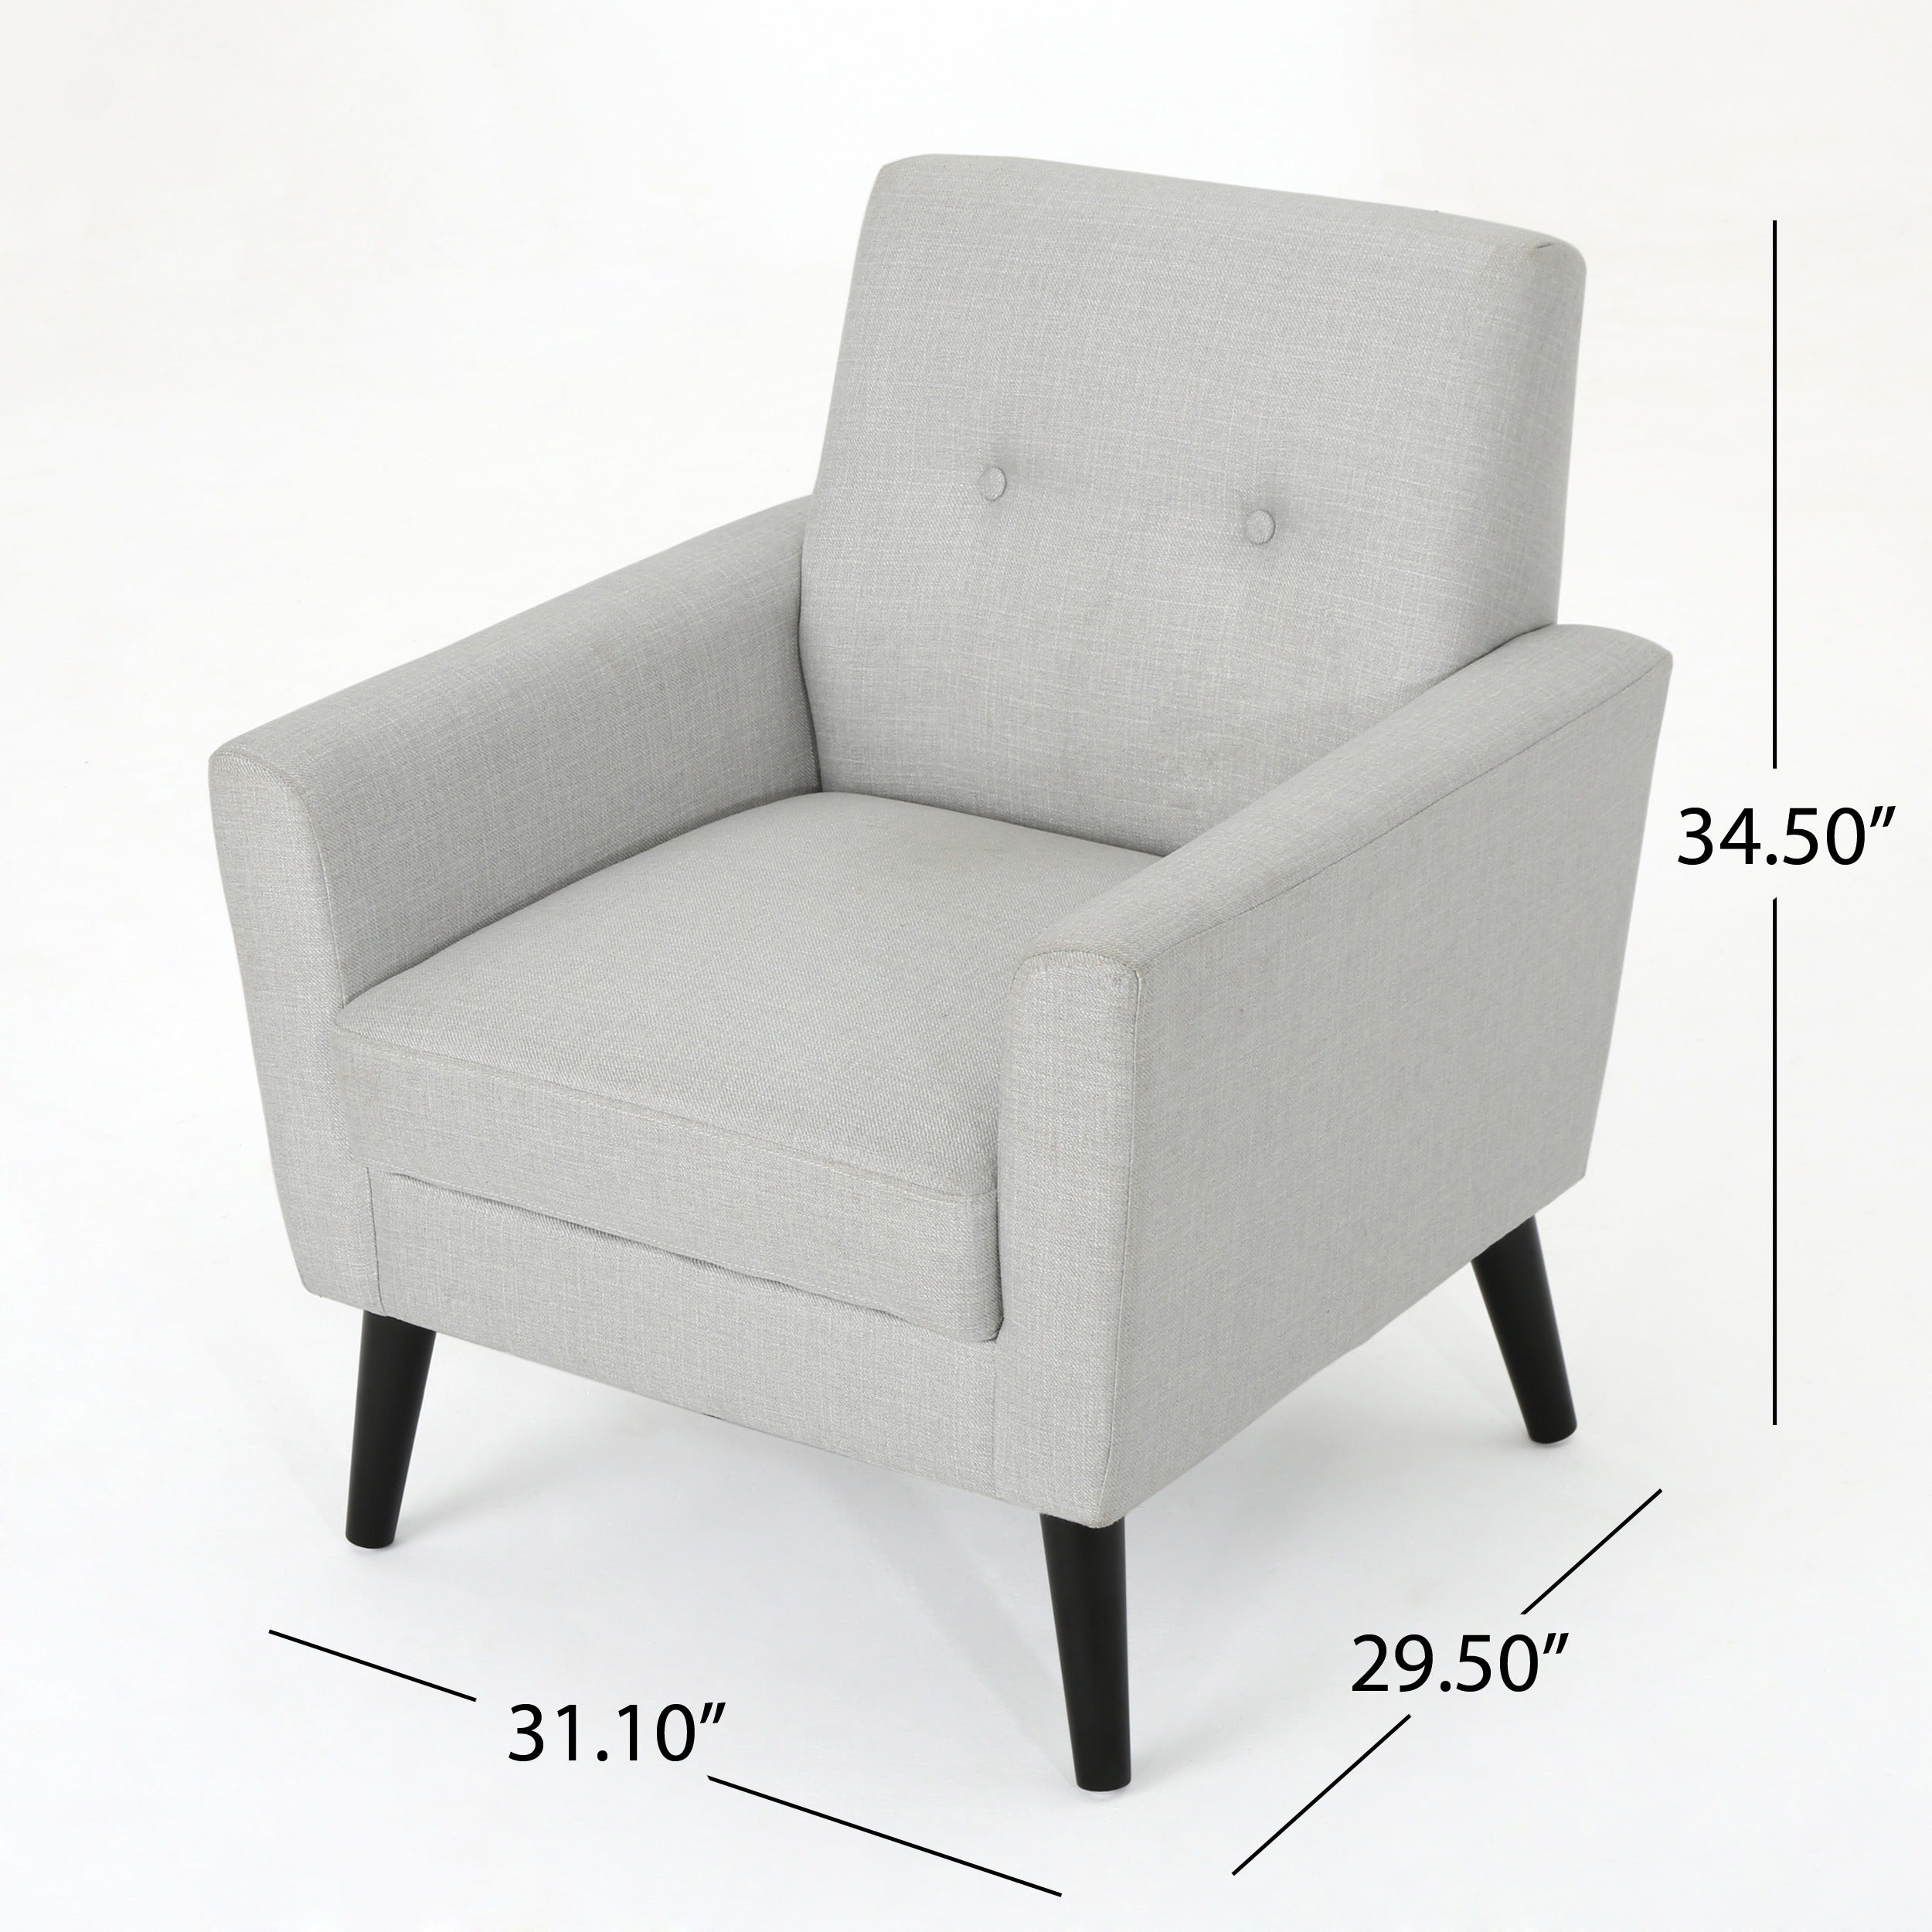 Sienna Mid Century Fabric Club Chair By Christopher Knight Home   Free  Shipping Today   Overstock   24631075